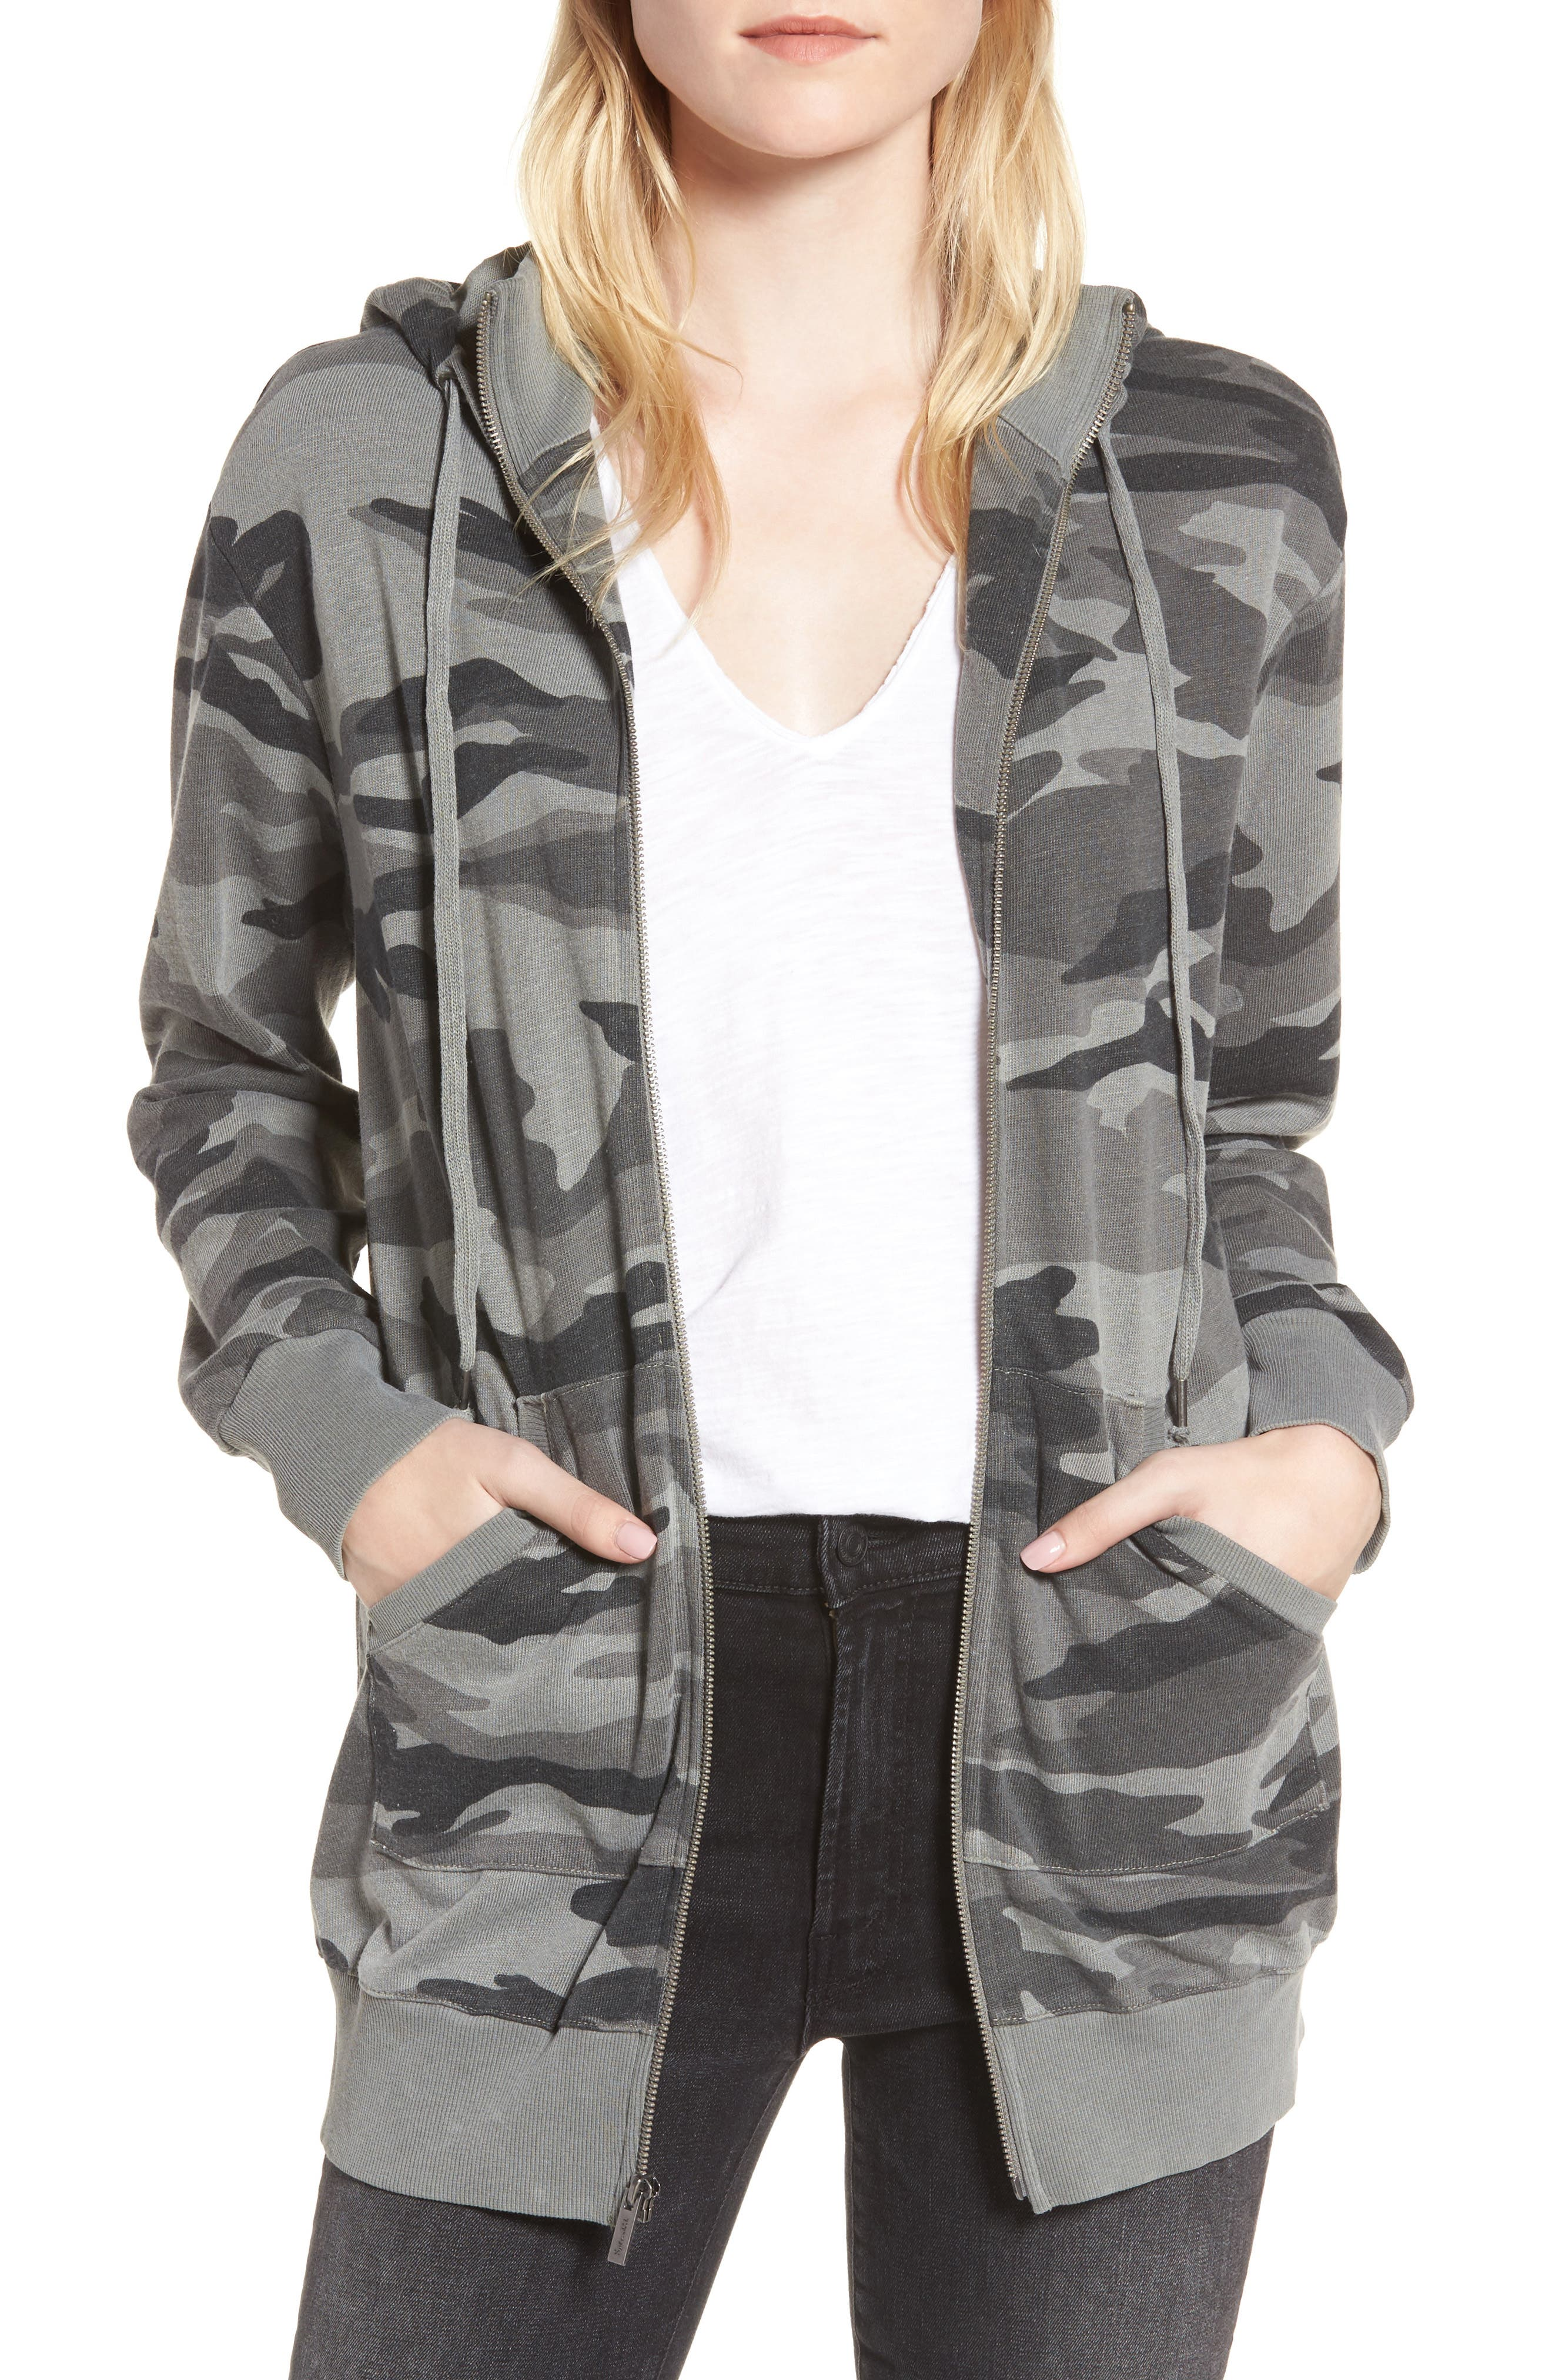 French Terry Camo Sweatshirt,                         Main,                         color, 301